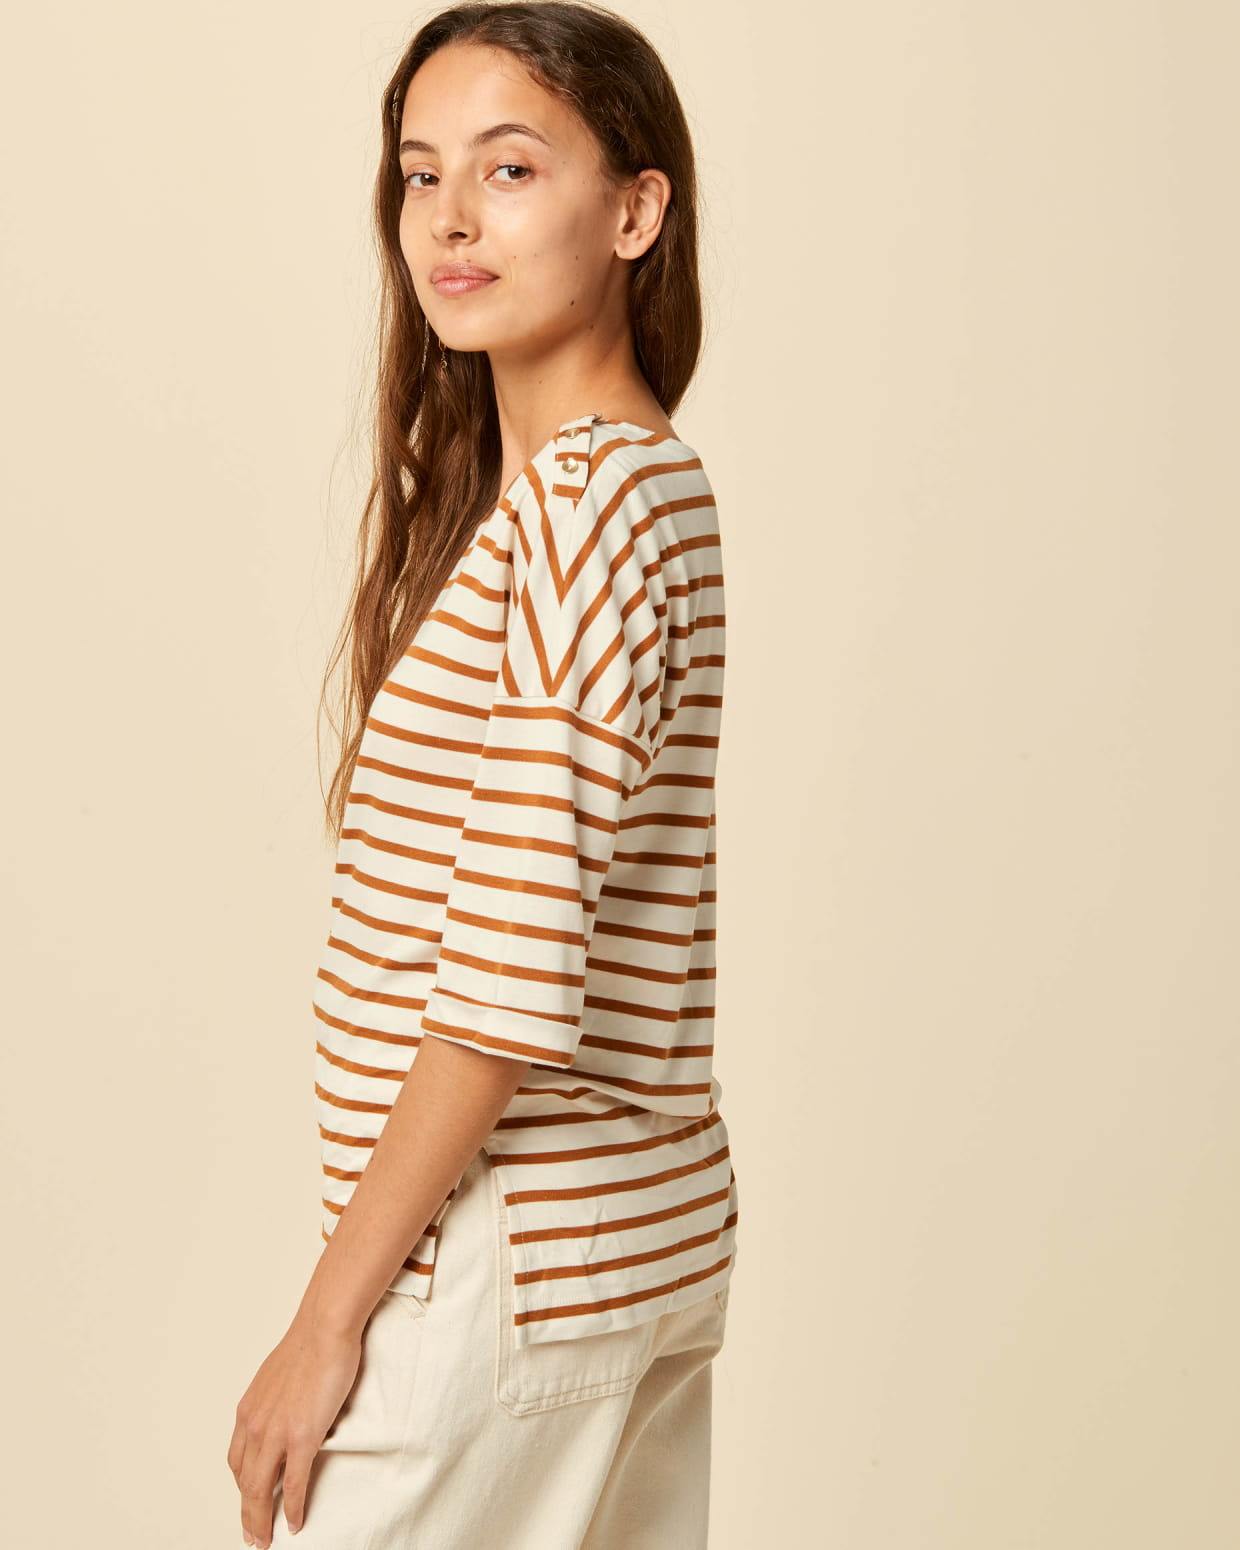 Sessun sailor-striped top